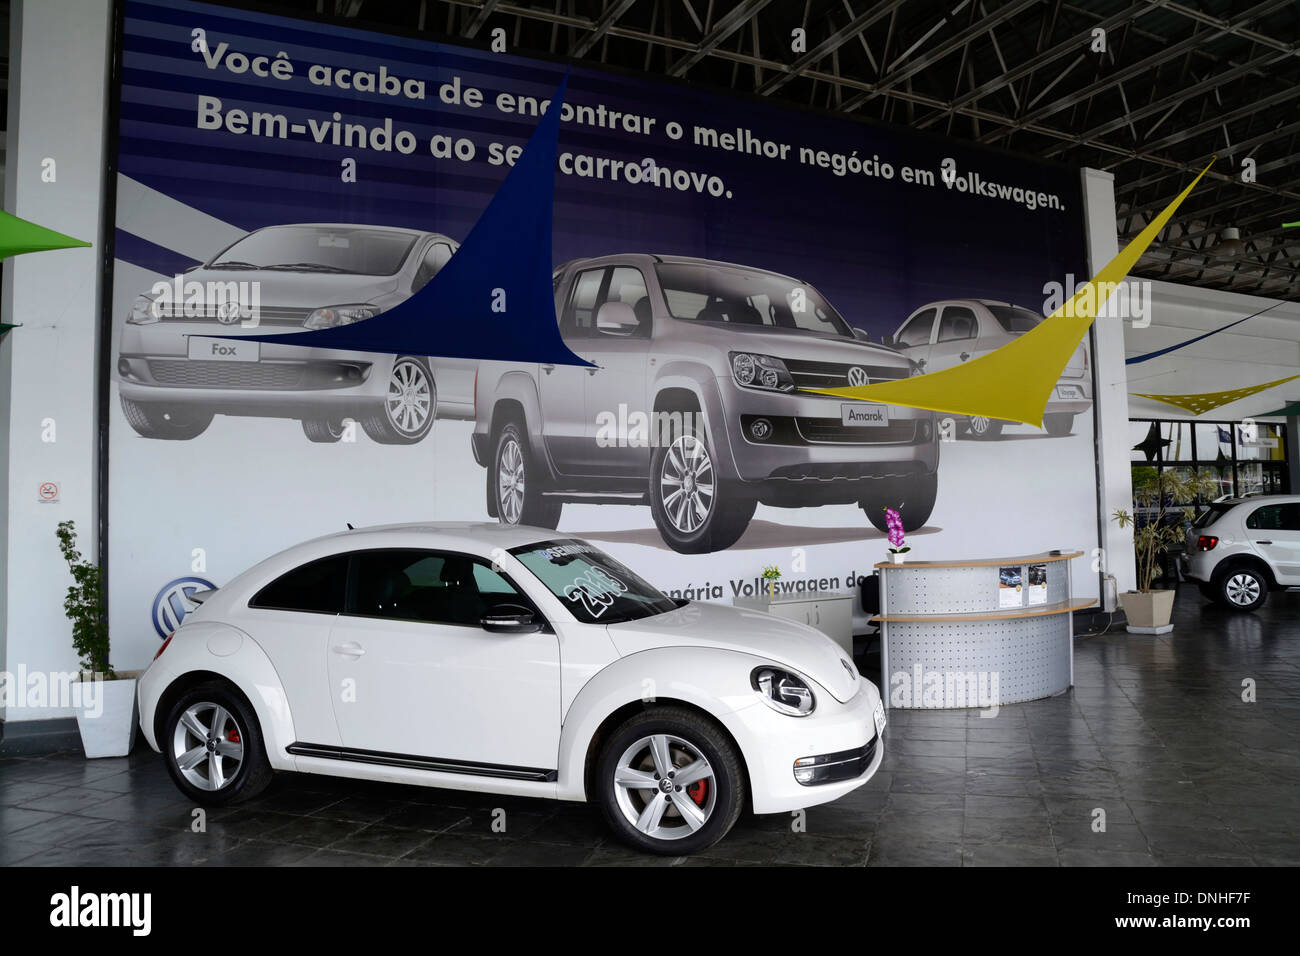 New Cars At A Volkswagen Dealership In Rio De Janeiro